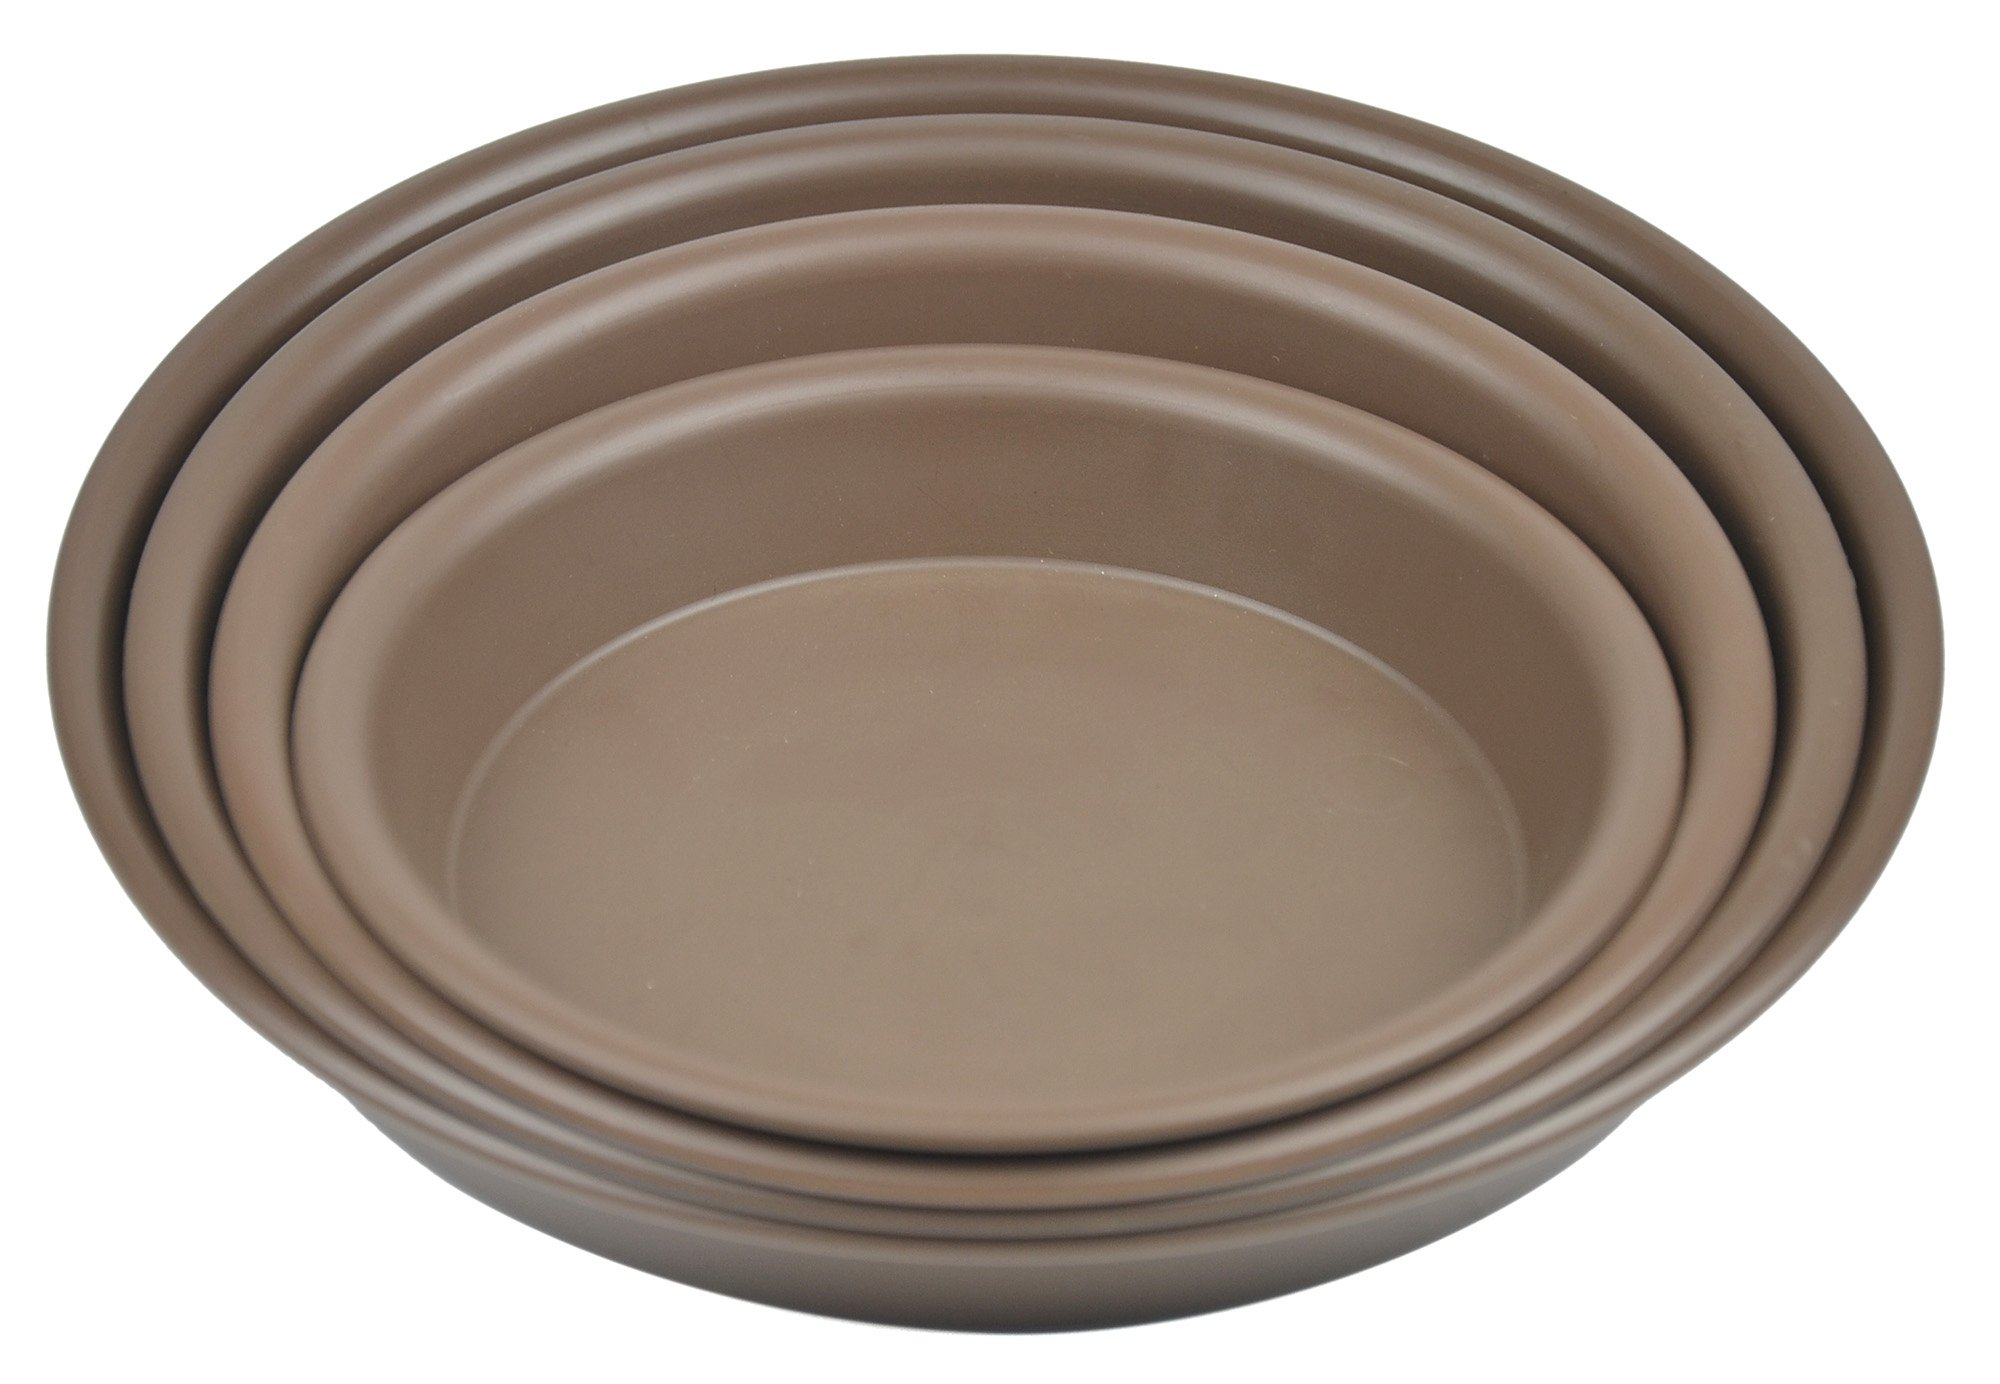 10.6'' Round Plant Saucer Planter Tray Pat Pallet for Flowerpot,Coffee,660 Count by Zhanwang